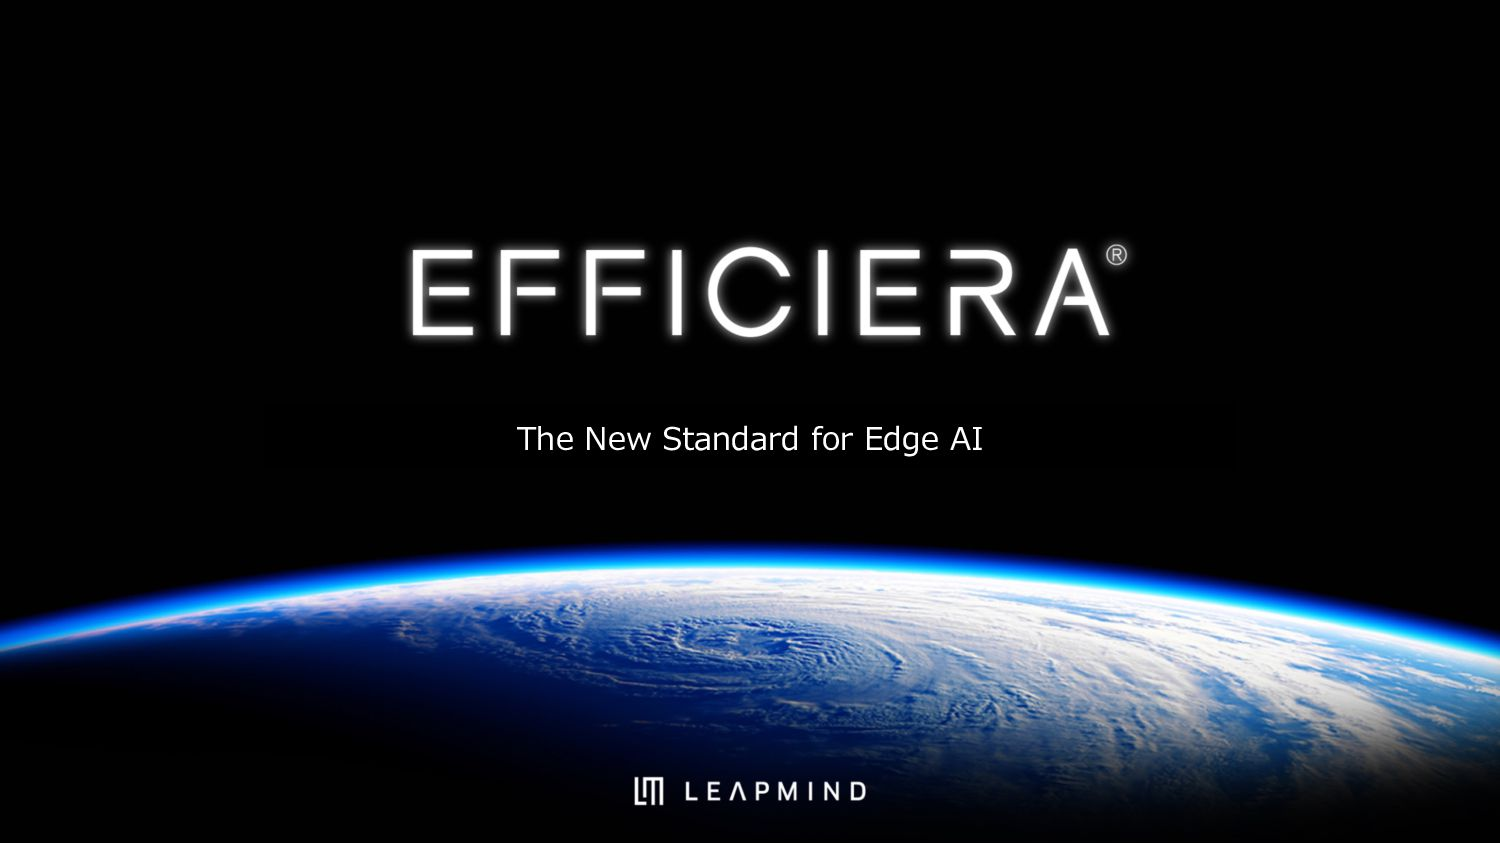 28 The New Standard for Edge AI